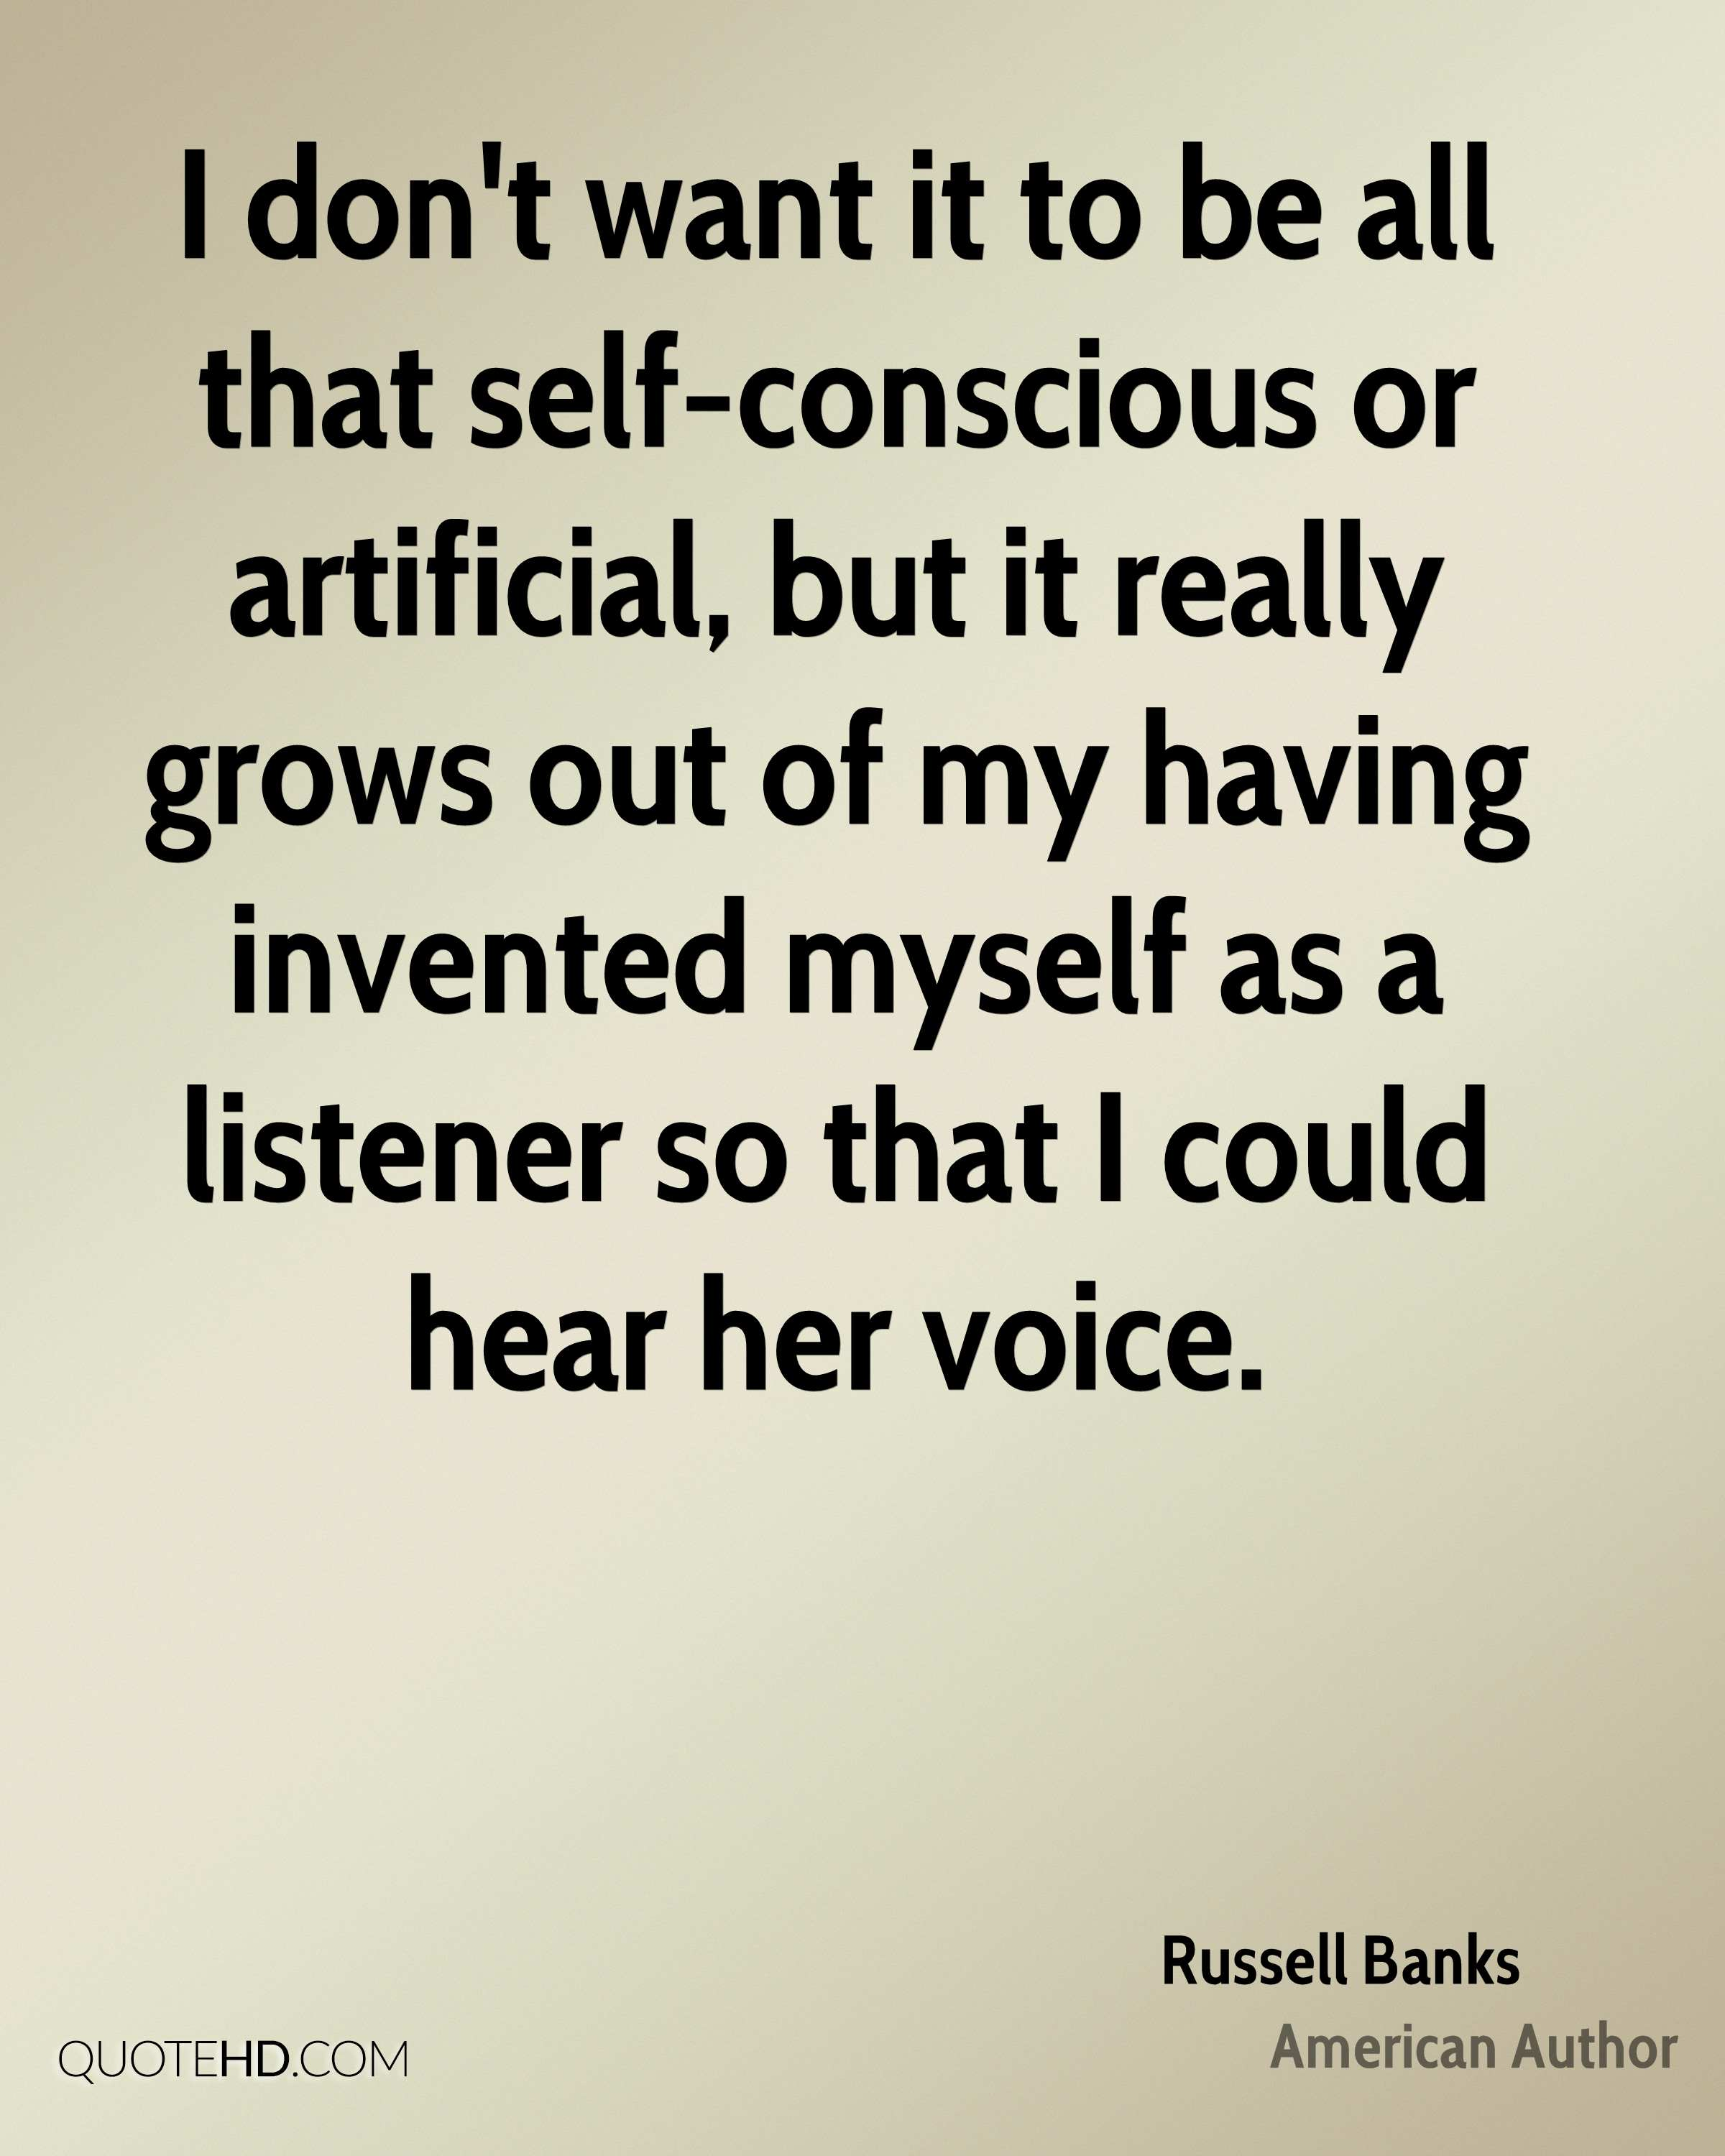 I don't want it to be all that self-conscious or artificial, but it really grows out of my having invented myself as a listener so that I could hear her voice.